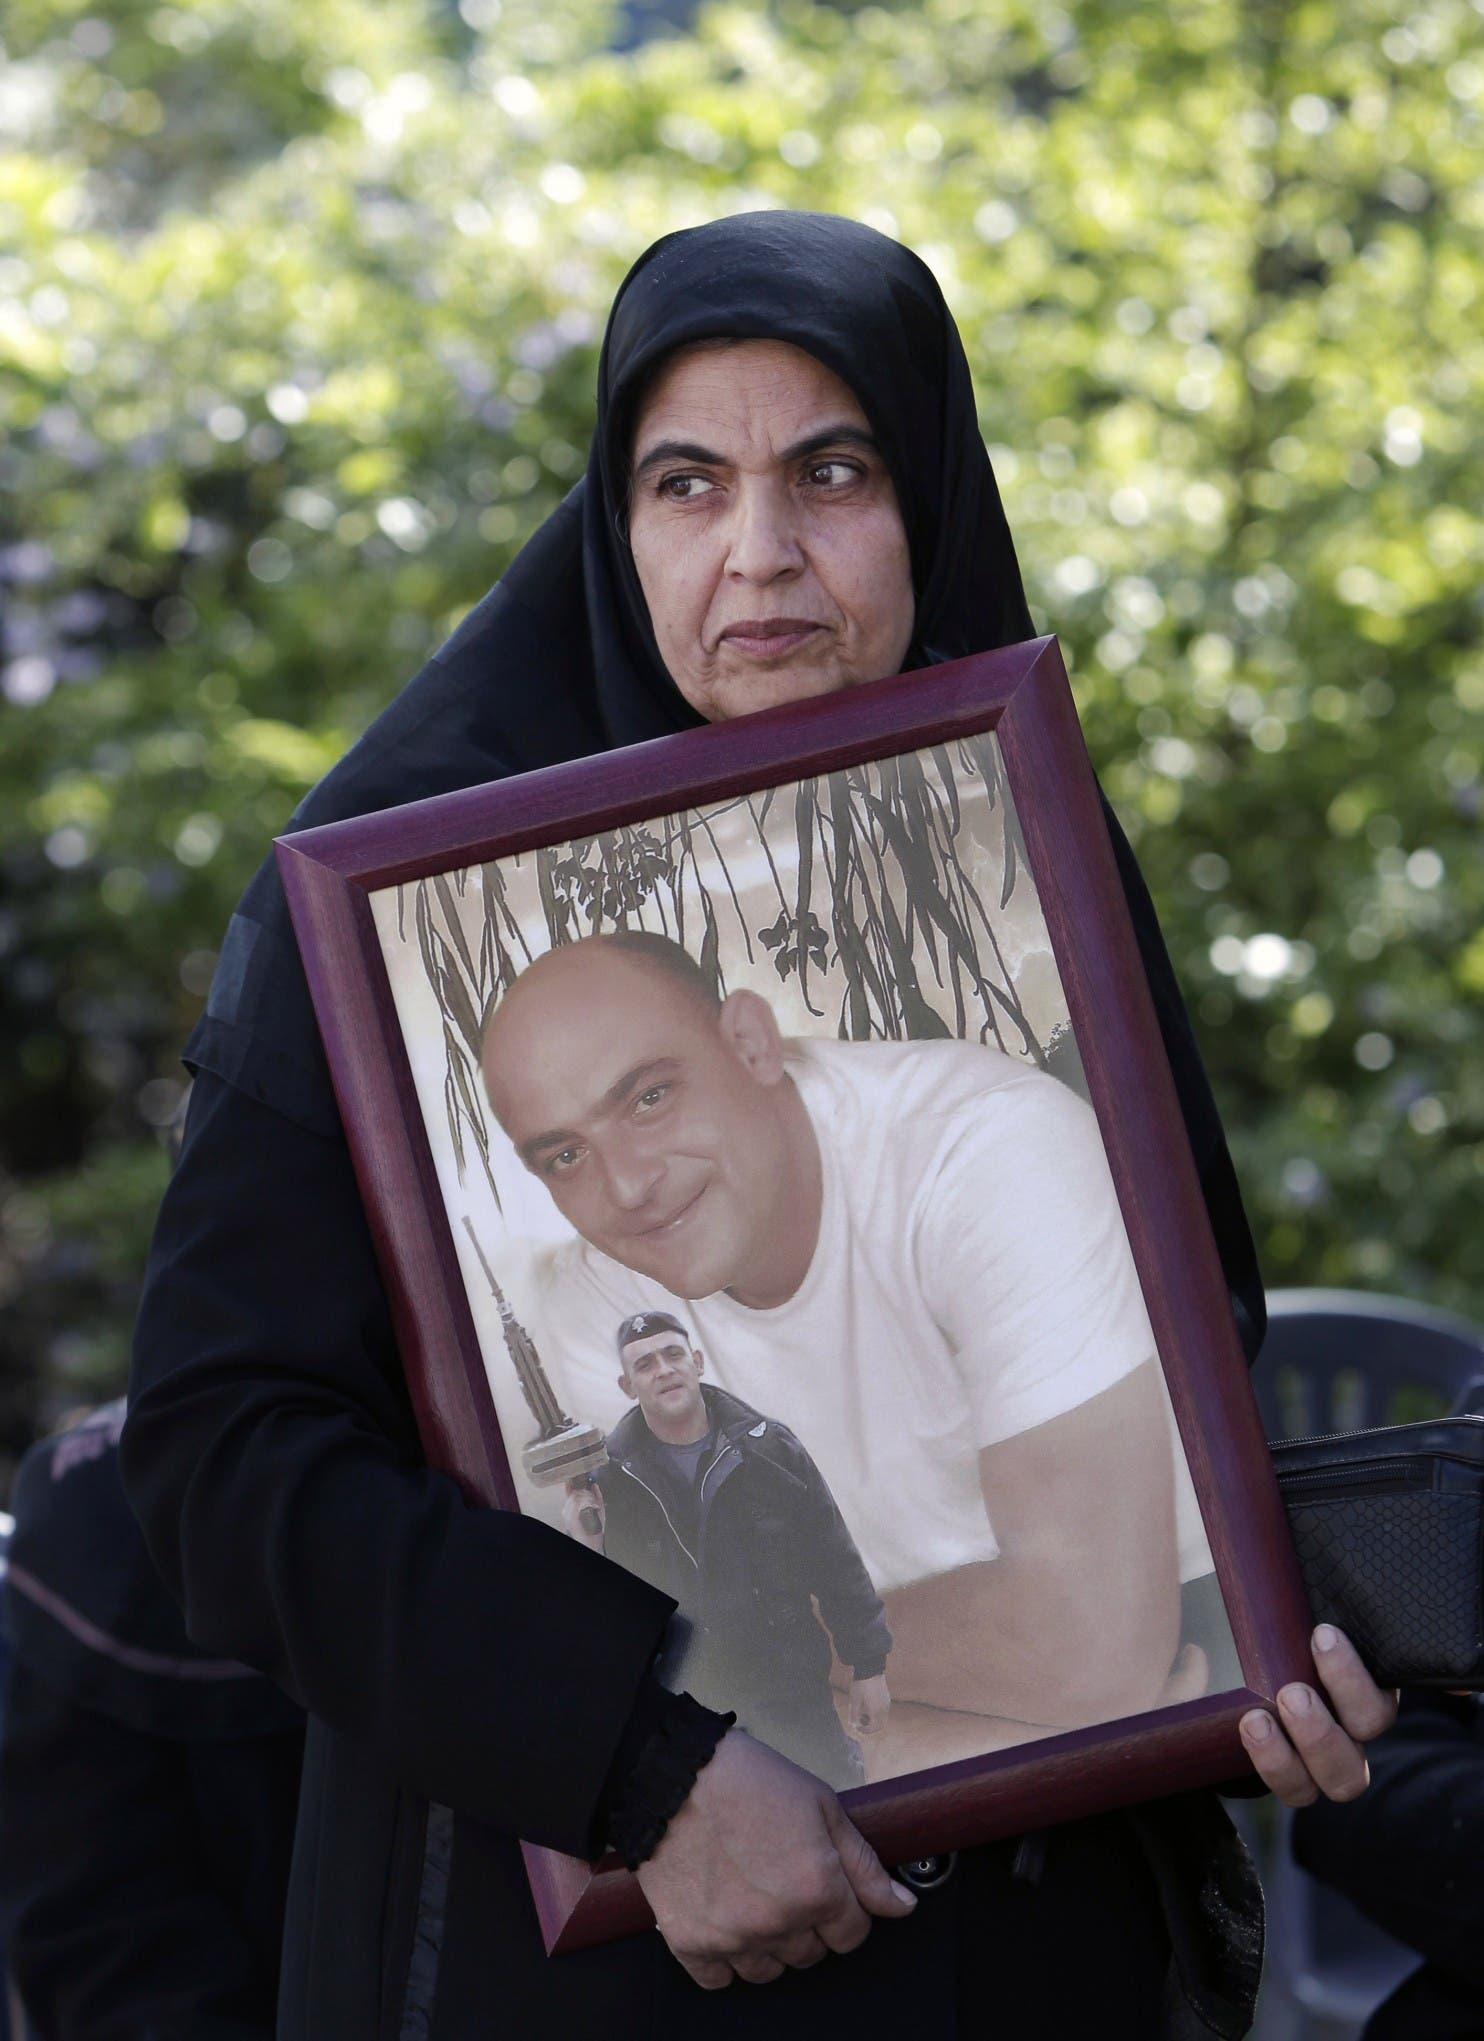 Inaam Omar, 50, aunt of one Lebanese soldier Ziad Omar who was kidnapped by Islamic militants, holds his picture during a demonstration to demand action to secure the captives' release, in front of government heaquarters in downtown Beirut, Lebanon, Monday, Nov. 17, 2014. The militants, including the al-Qaida linked Nusra Front and the extremist Islamic State group, are holding some 20 Lebanese soldiers and policemen hostages since August, when they briefly overran a Lebanese border town. (Bilal Hussein/Associated Press)